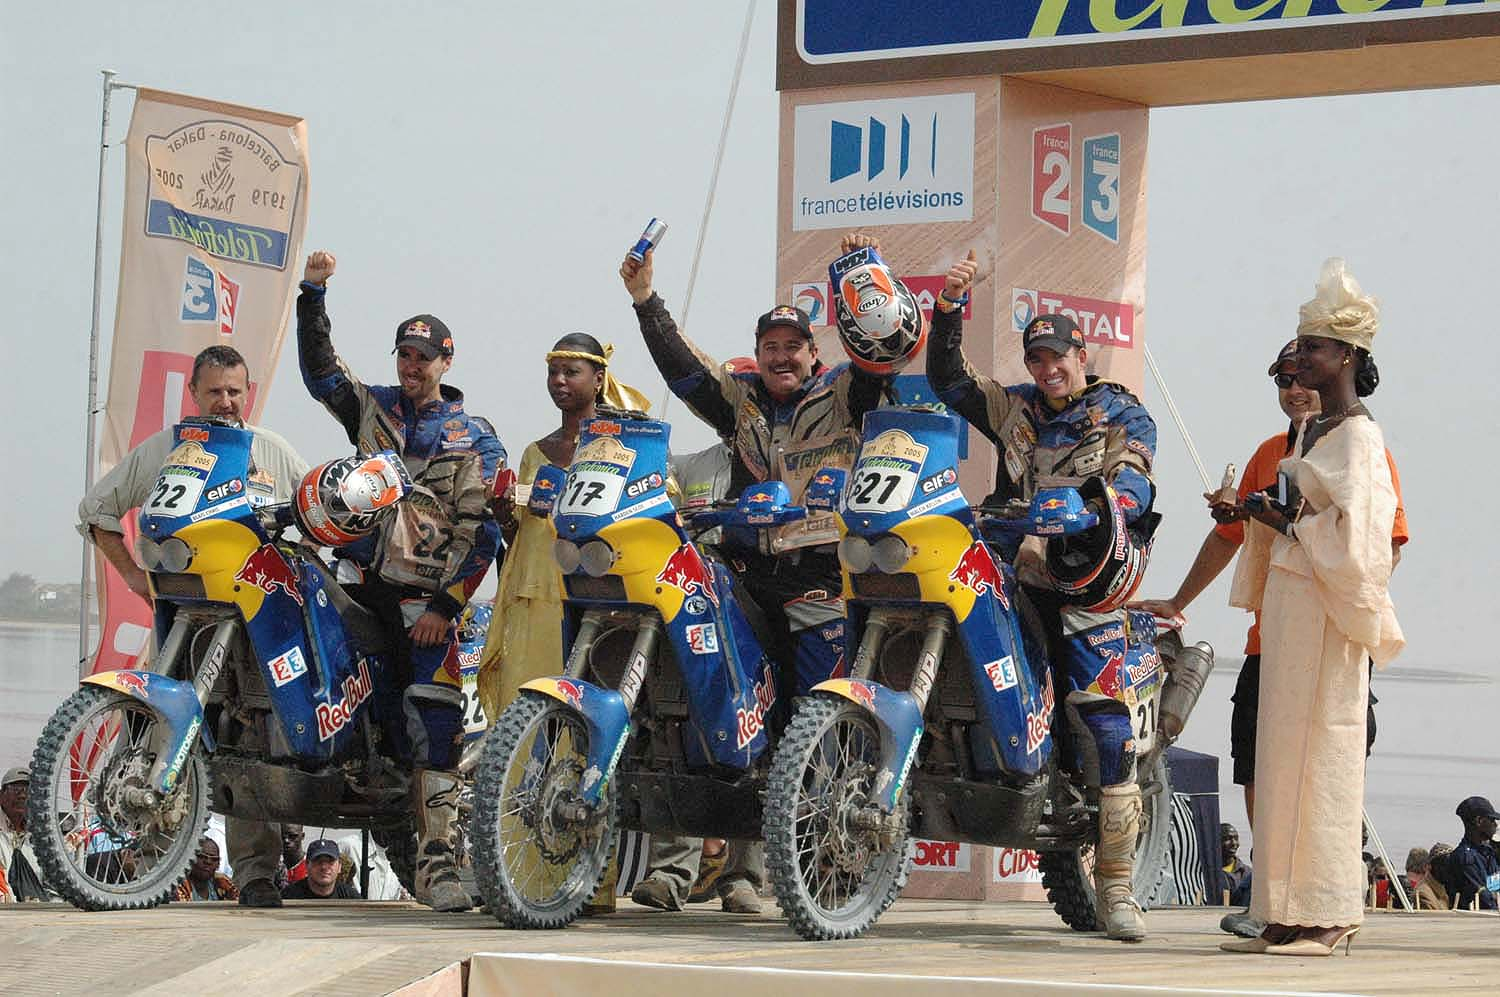 2005 Red Bull Team podium at Lac Rose